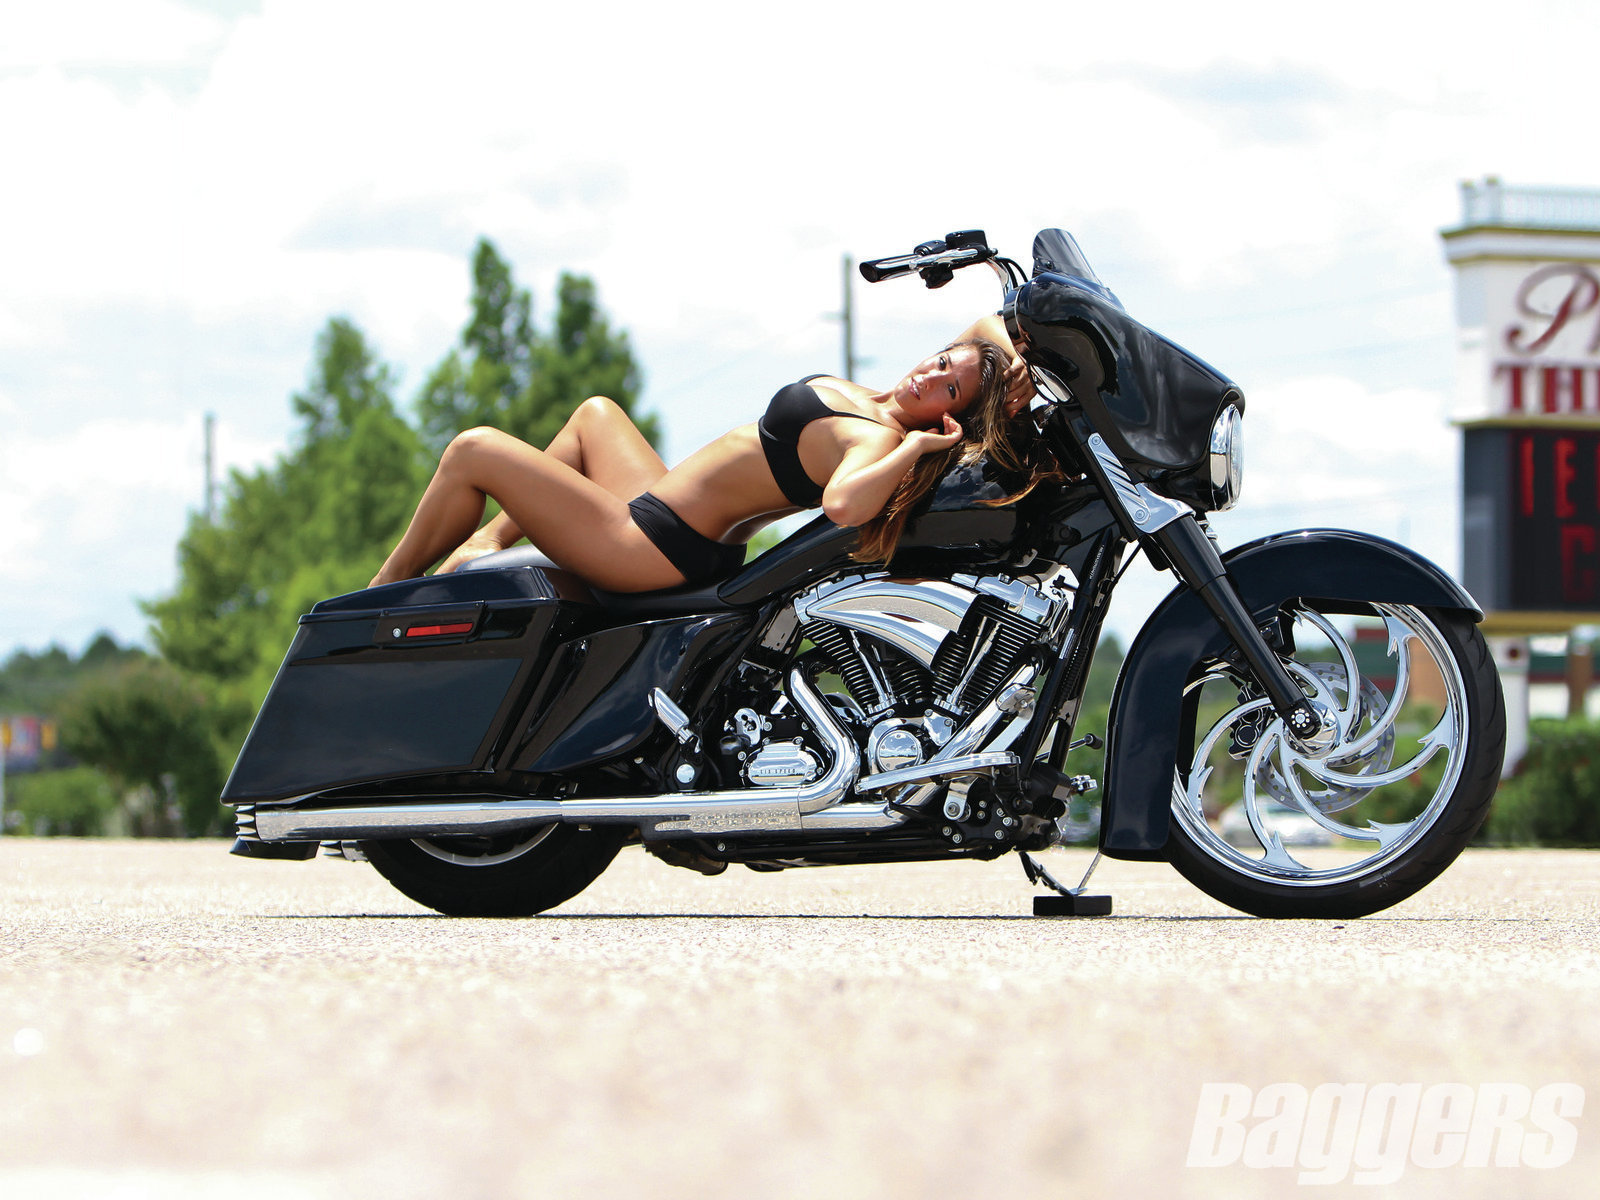 Harley Davidson Street Glide Wallpapers Vehicles Hq Harley